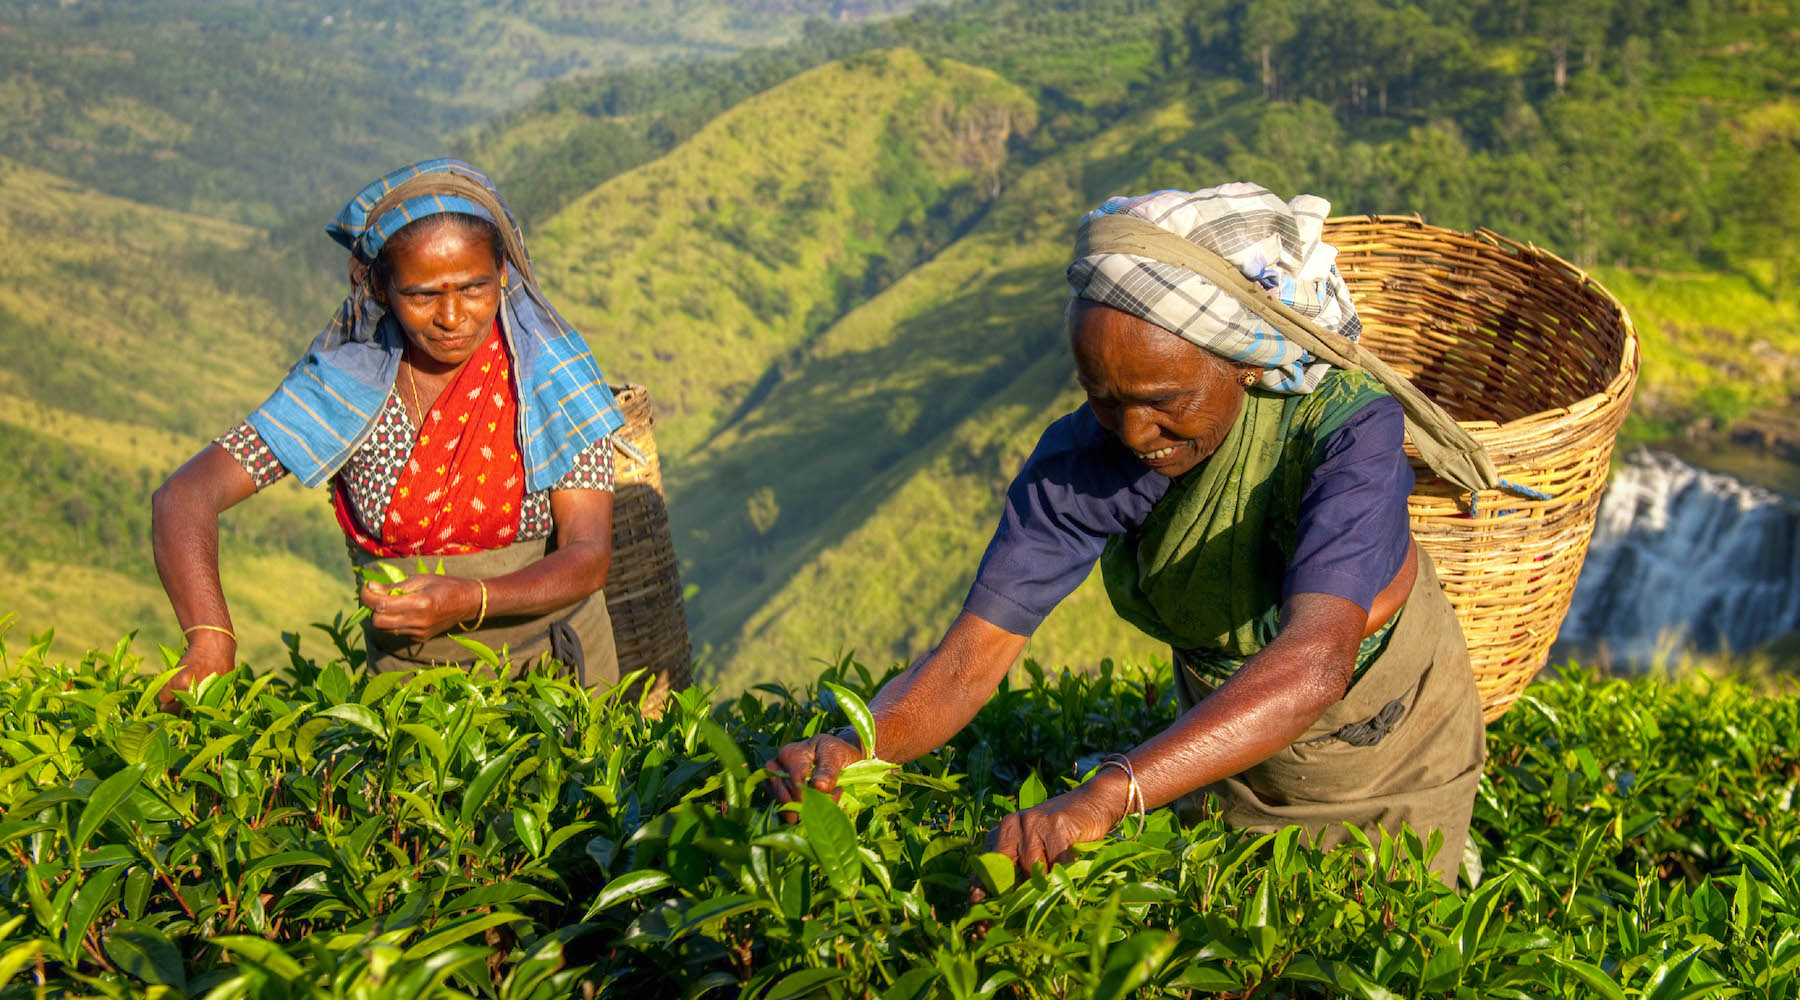 Tea pickers in Darjeeling India picking Chateau Rouge organic Darjeeling tea